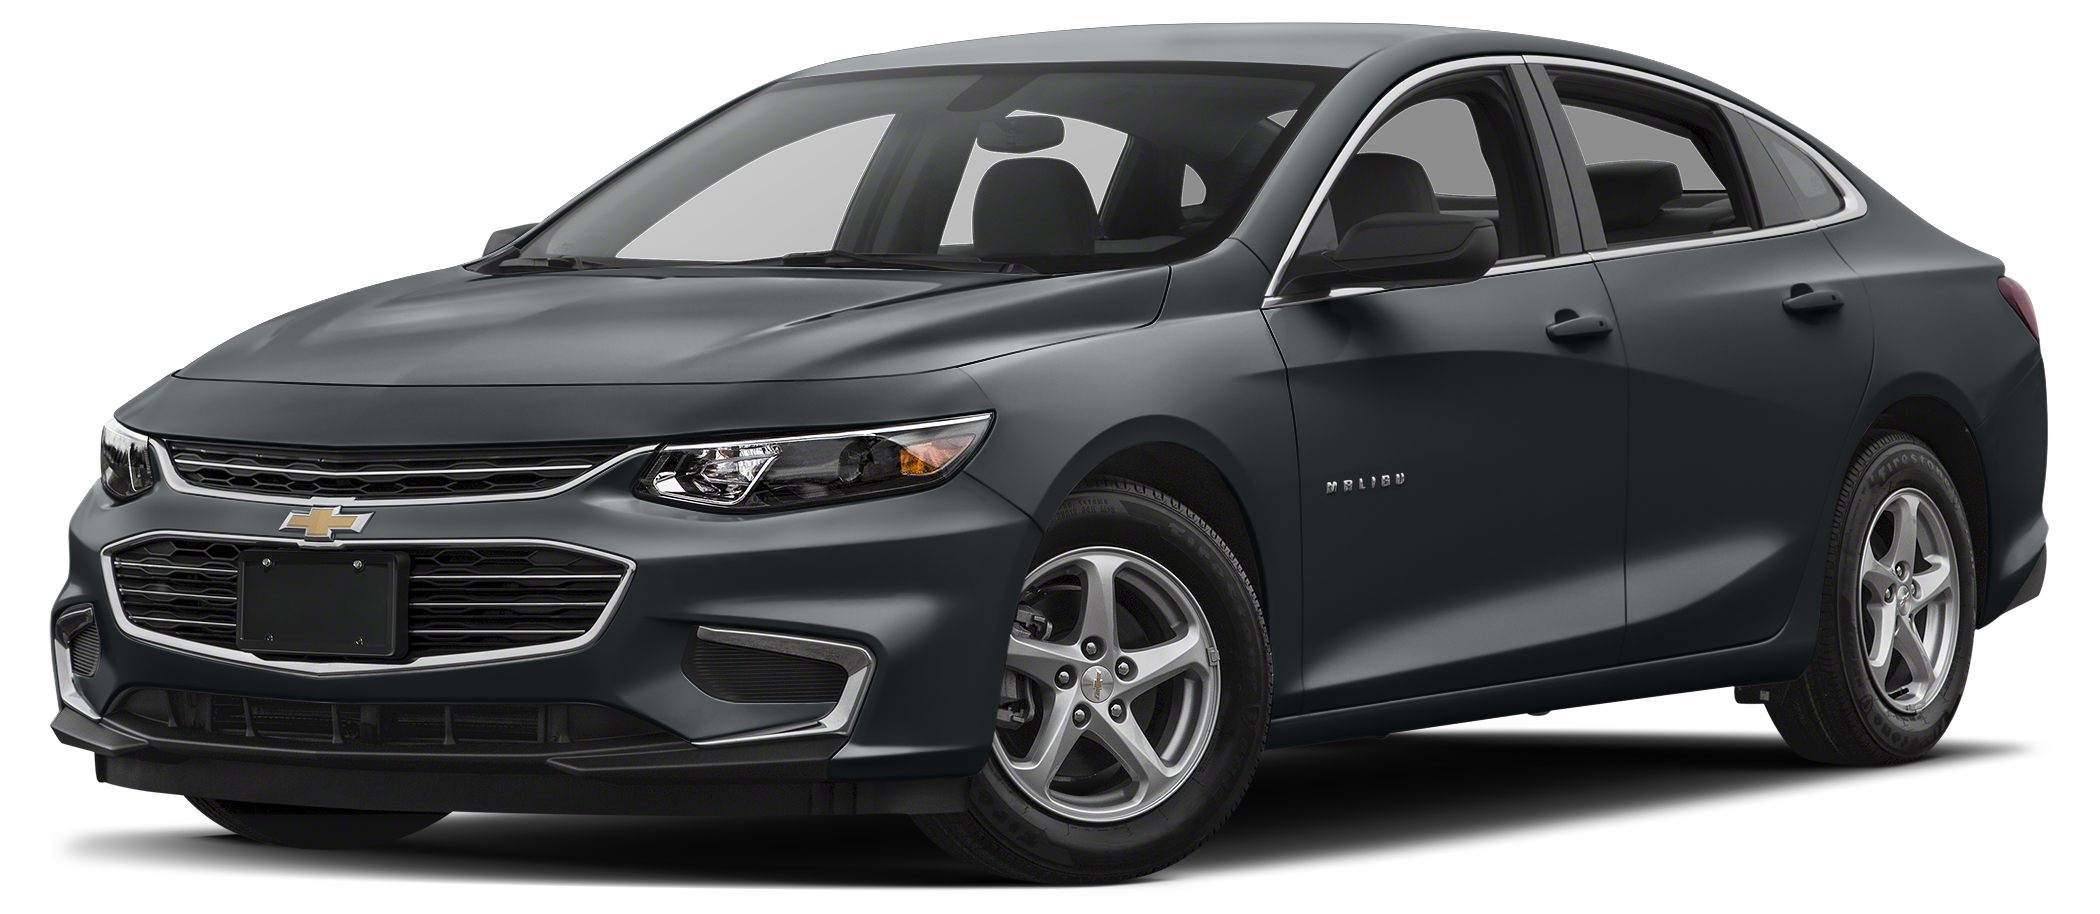 2018 Chevrolet Malibu LS w1LS Price includes 2000 - General Motors Consumer Cash Program Exp